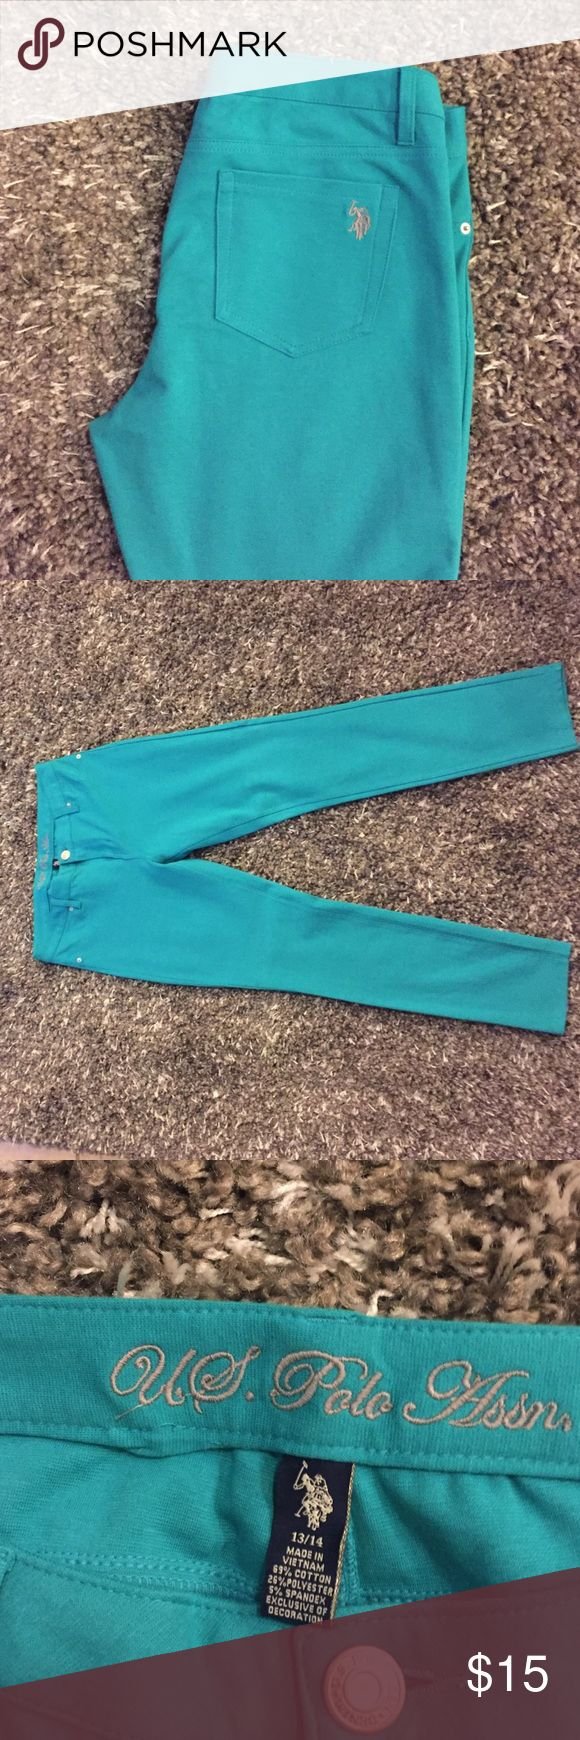 Turquoise jeans/tights New turquoise jeans Polo by Ralph Lauren Jeans Skinny